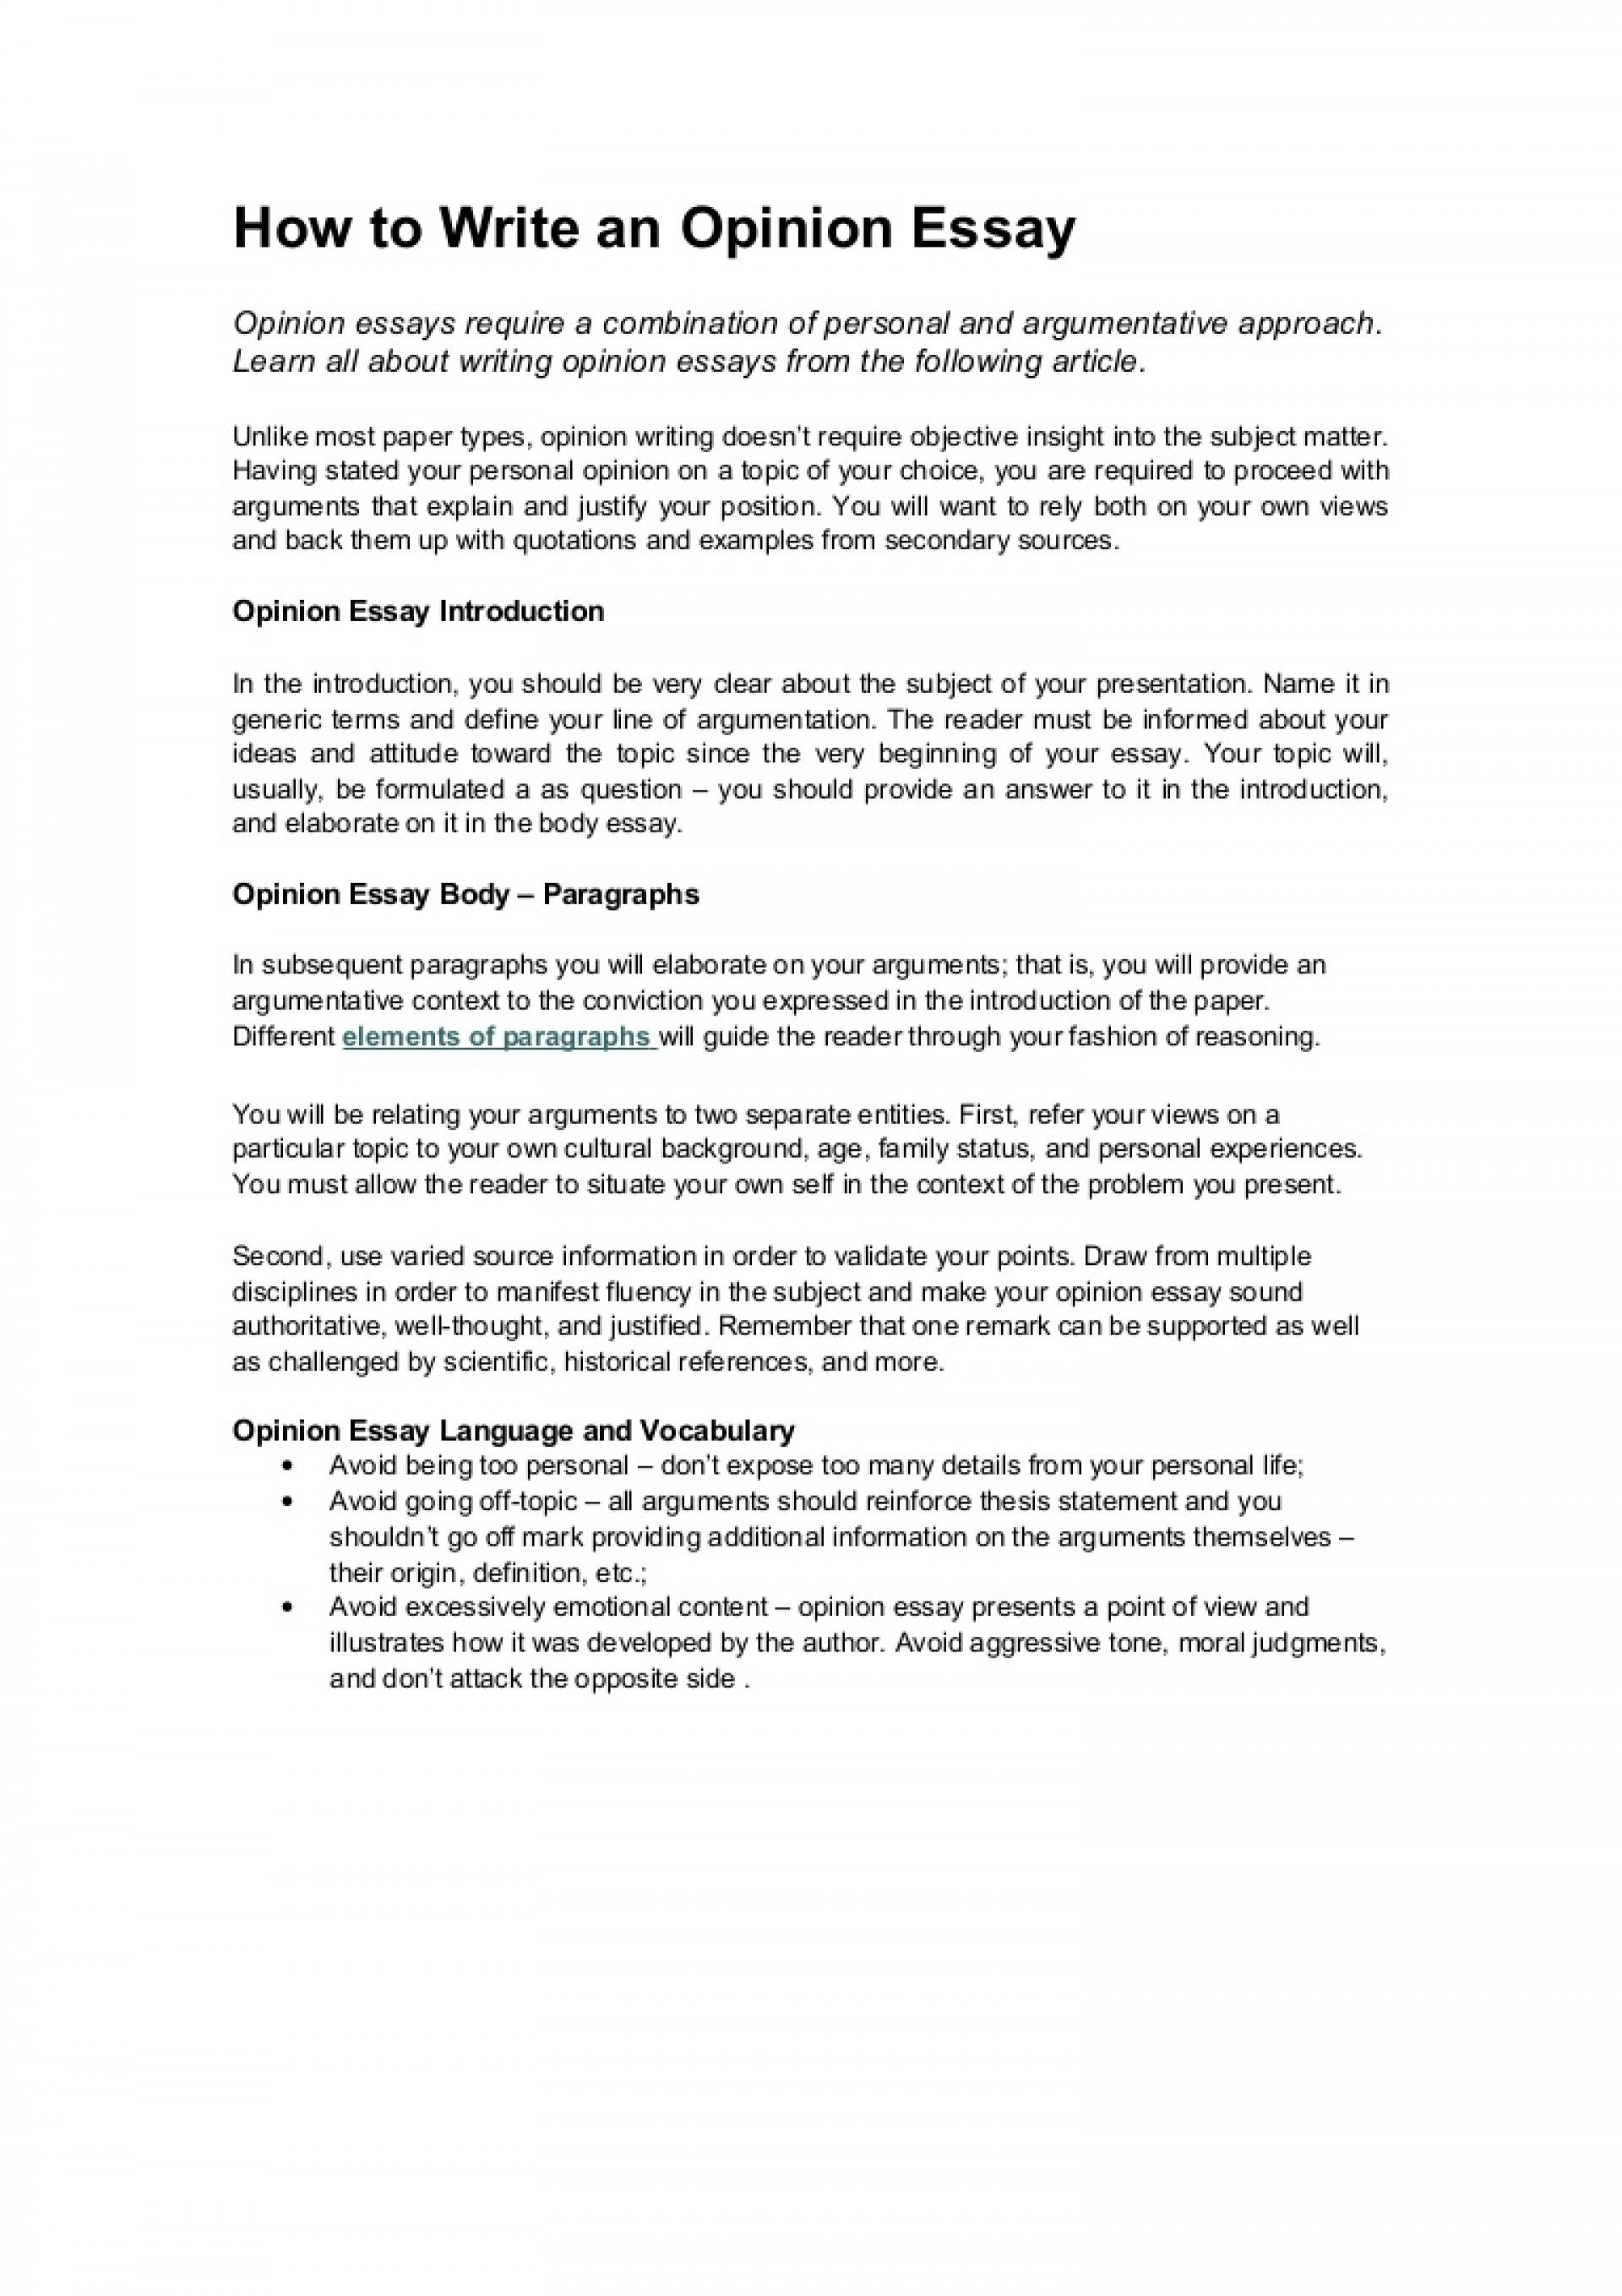 009 Howtowriteanopinionessay Lva1 App6891 Thumbnail Essay Example About Marvelous Immigration In Canada Causes The United States 1920